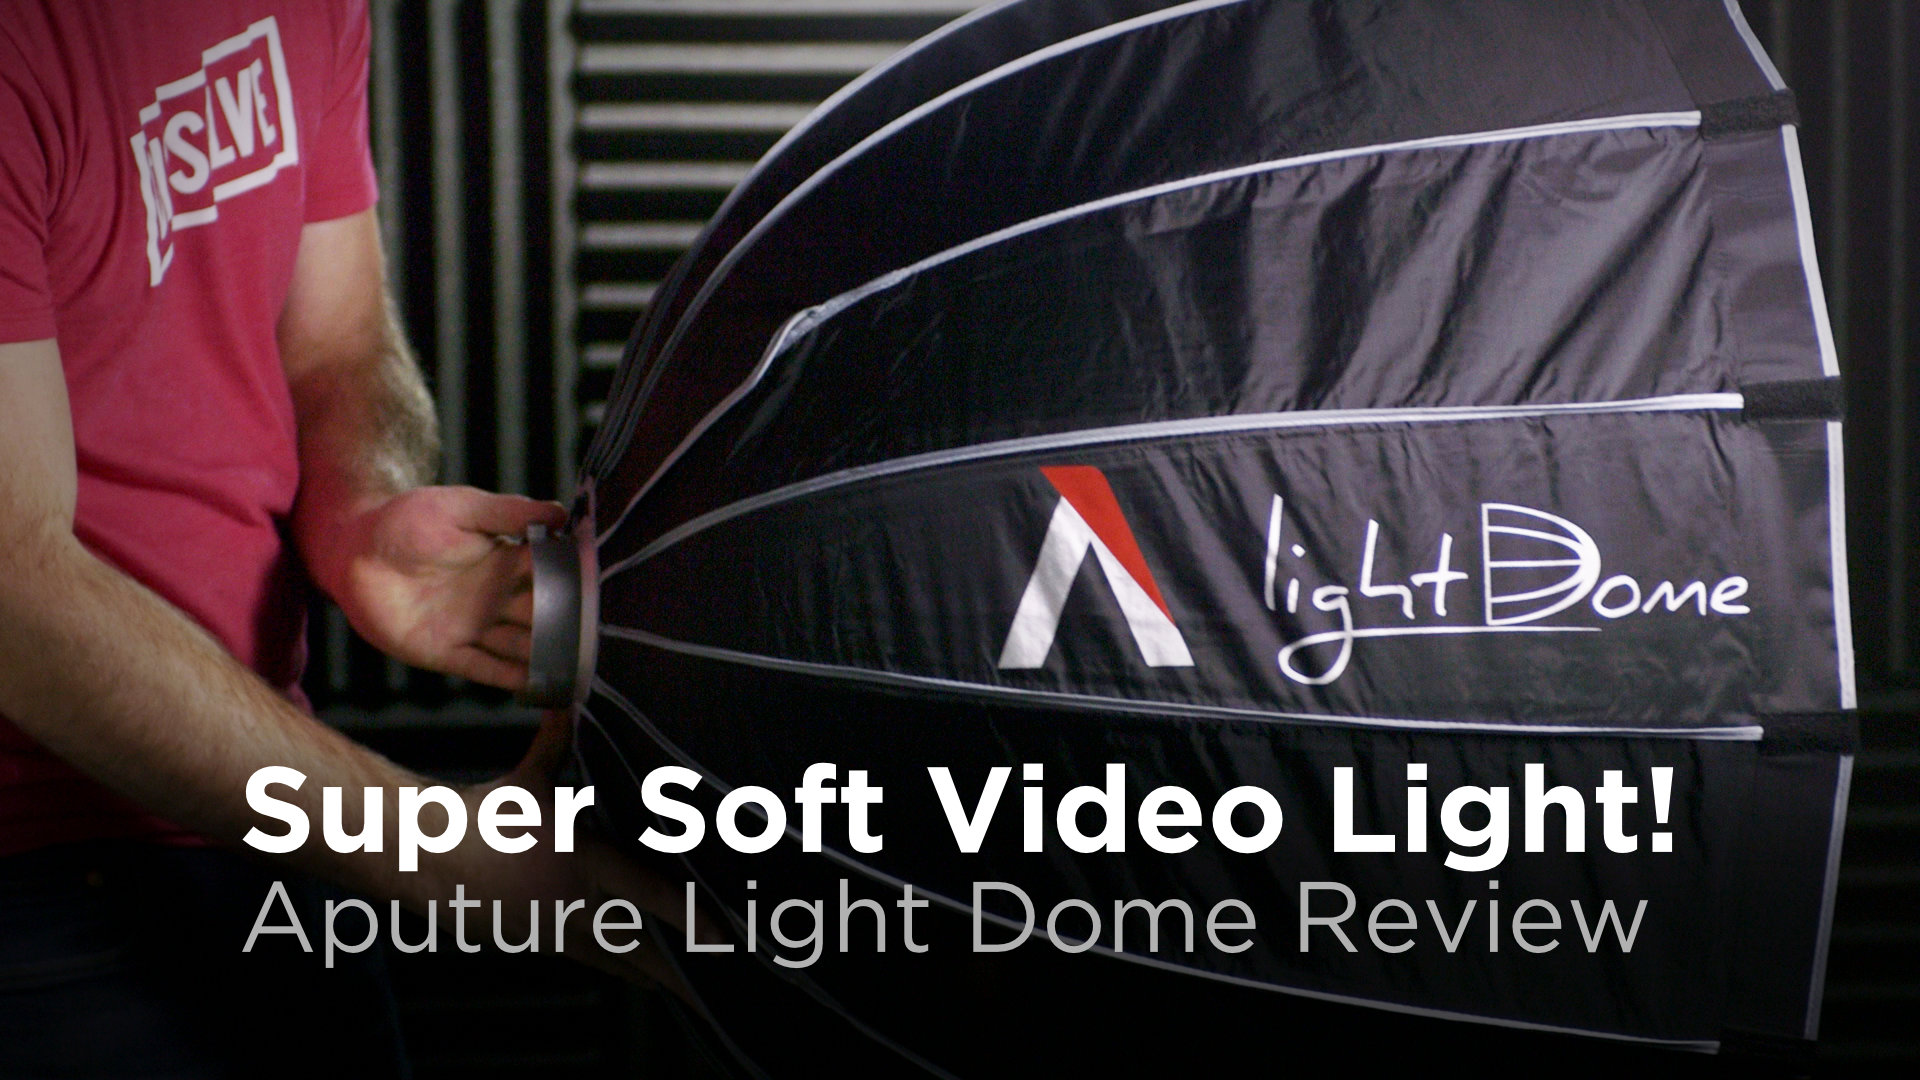 Super Soft Video Light: Aputure Light Dome Review